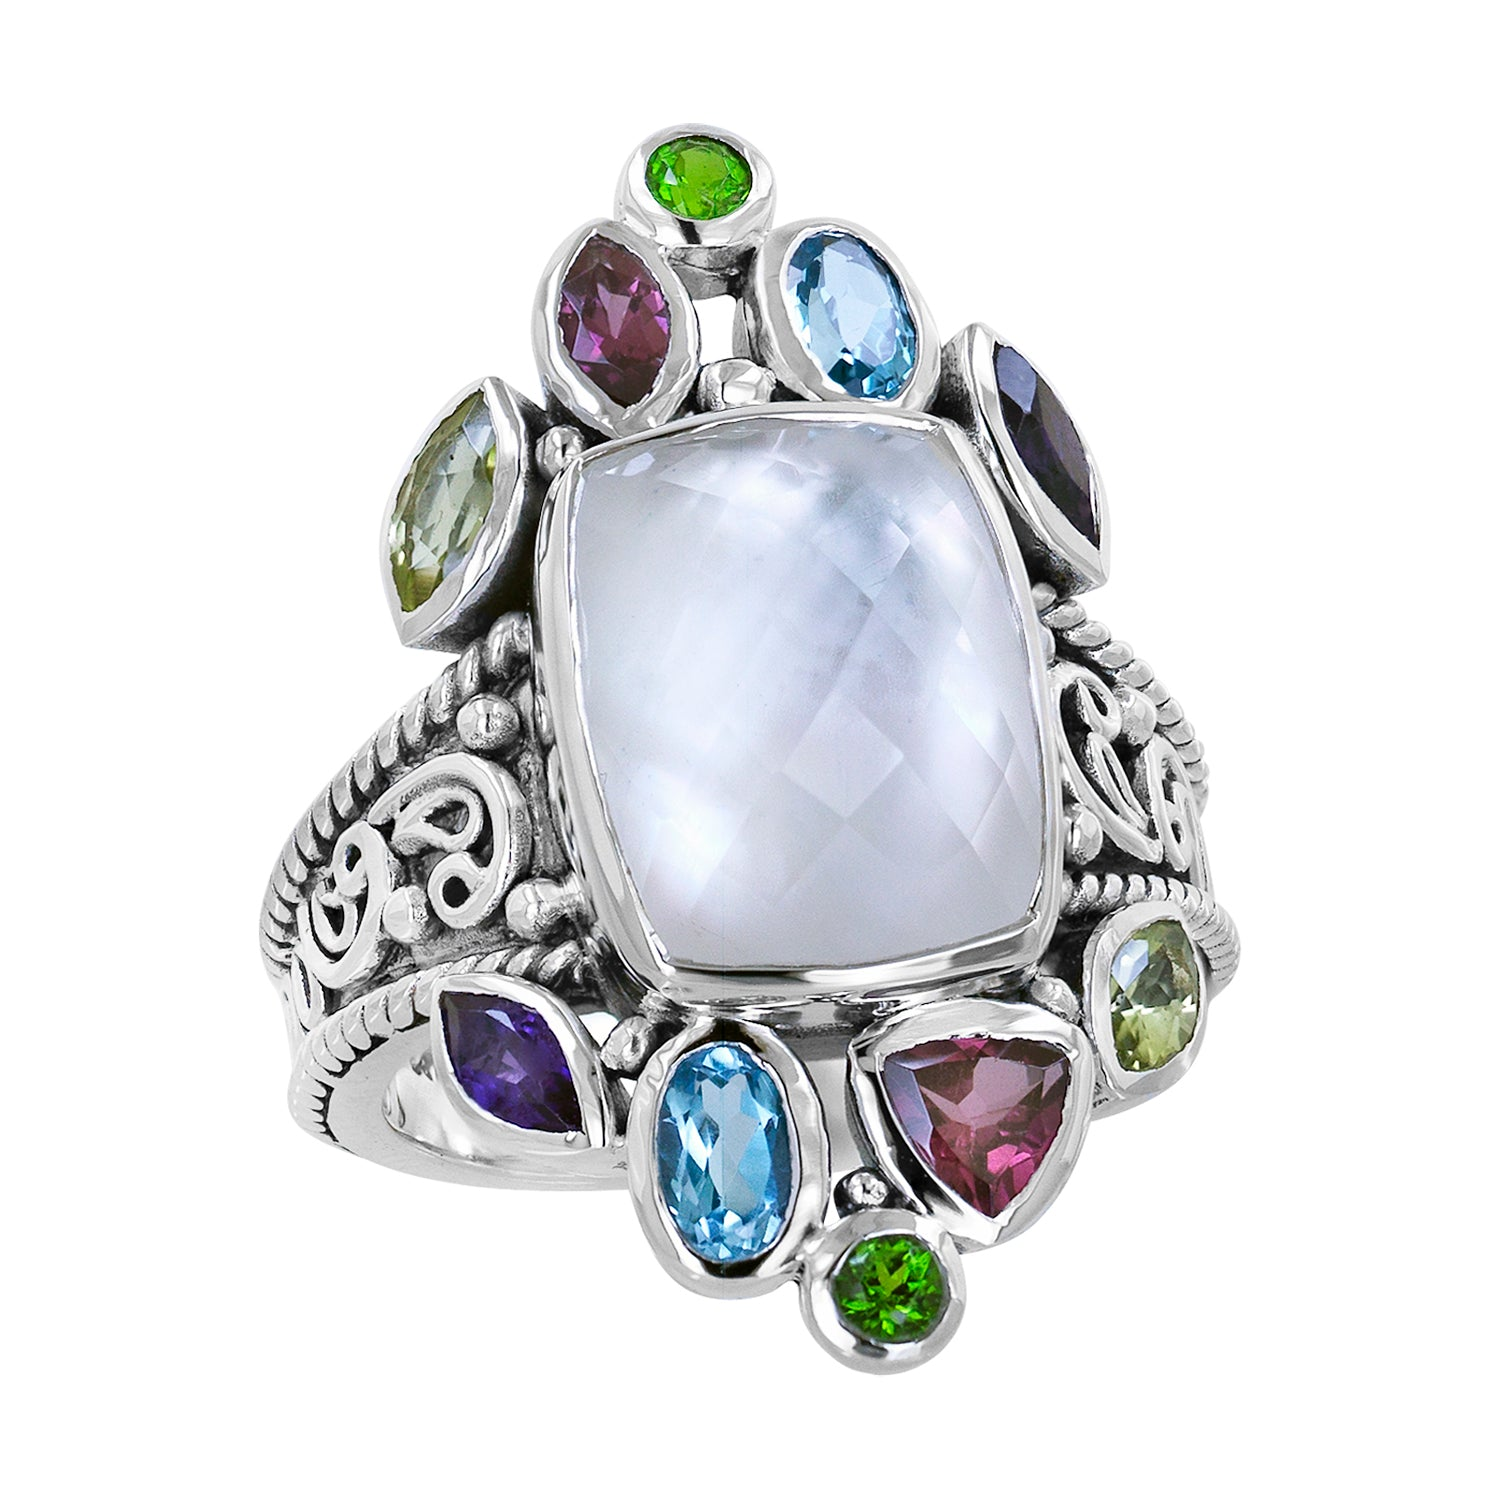 Sterling silver ring with large Mother of Pearl and multi-colored gemstones